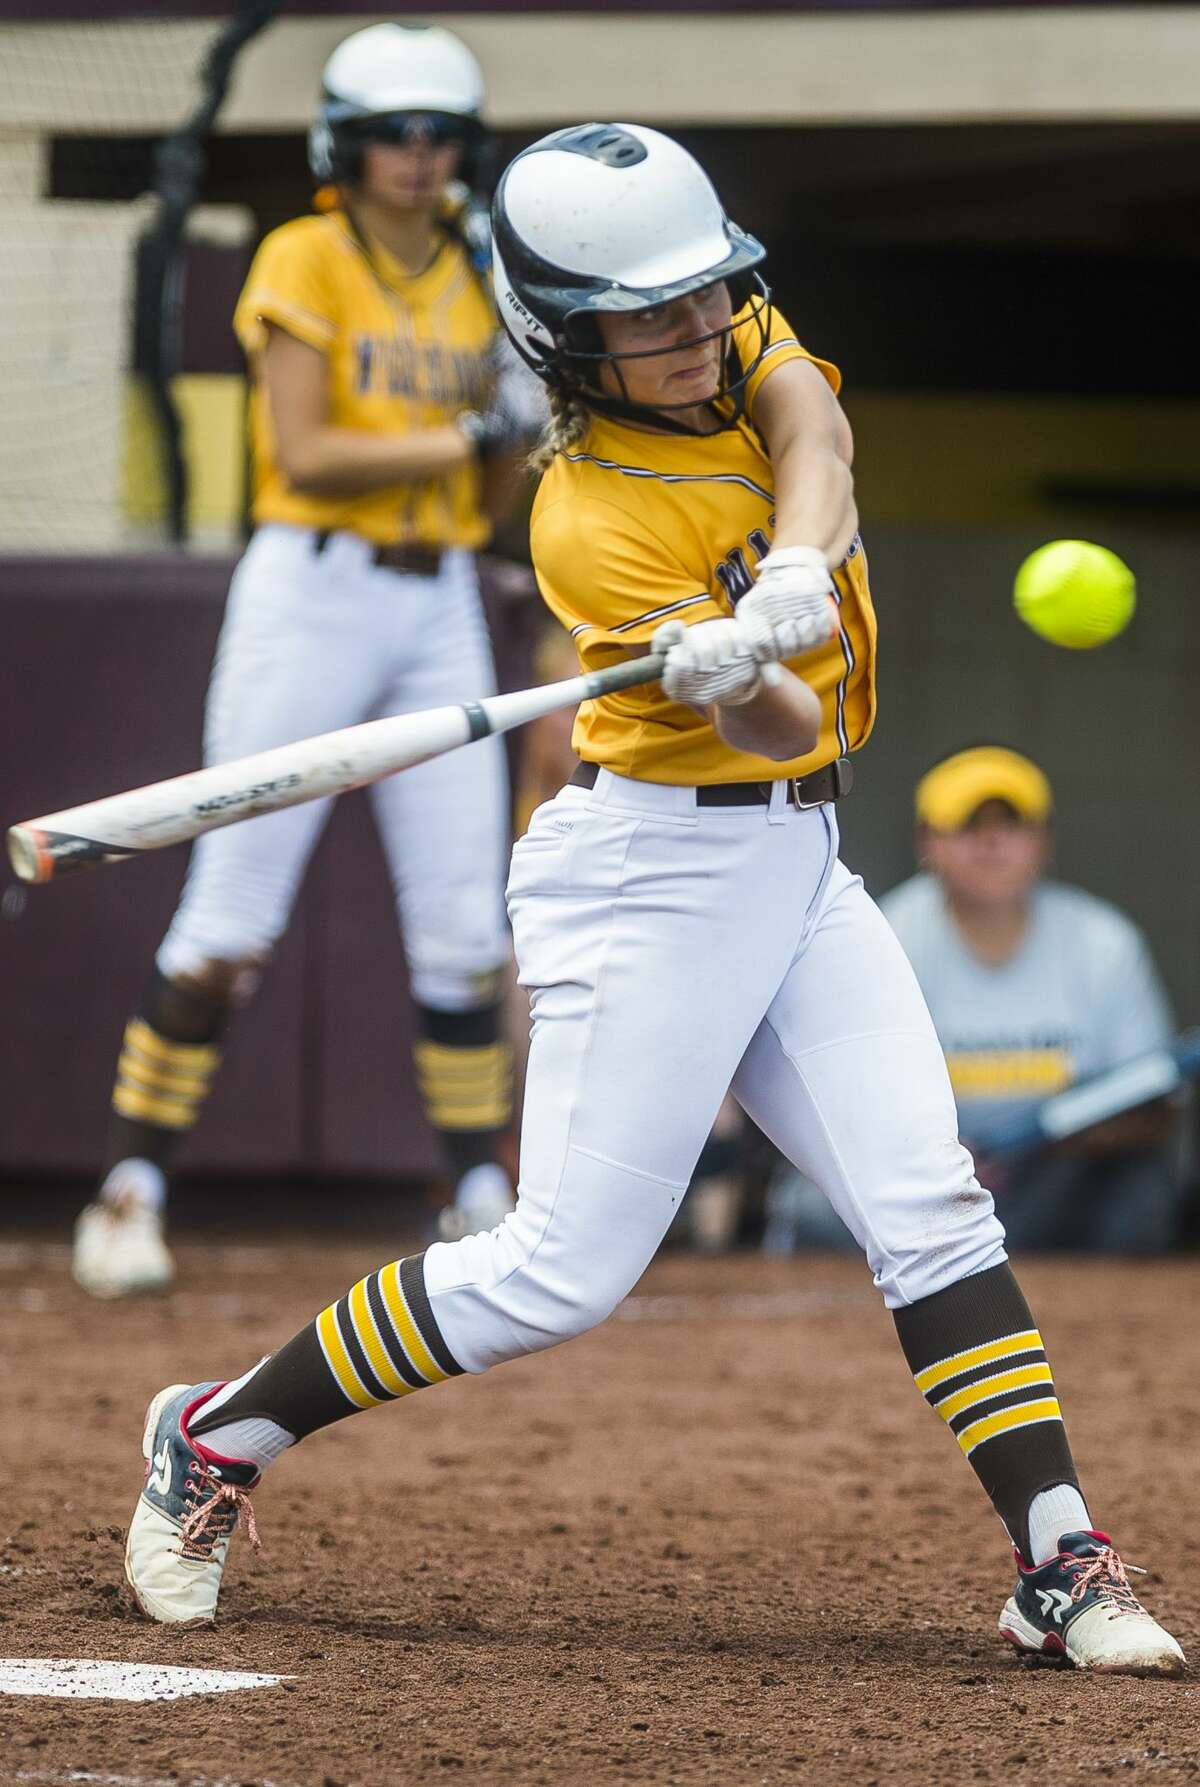 Bay City Western's Katie Bickham swings on a pitch during the Warriors' Division 1 state quarterfinals victory over Lowell on Tuesday, June 11, 2019 at Central Michigan University. (Katy Kildee/kkildee@mdn.net)